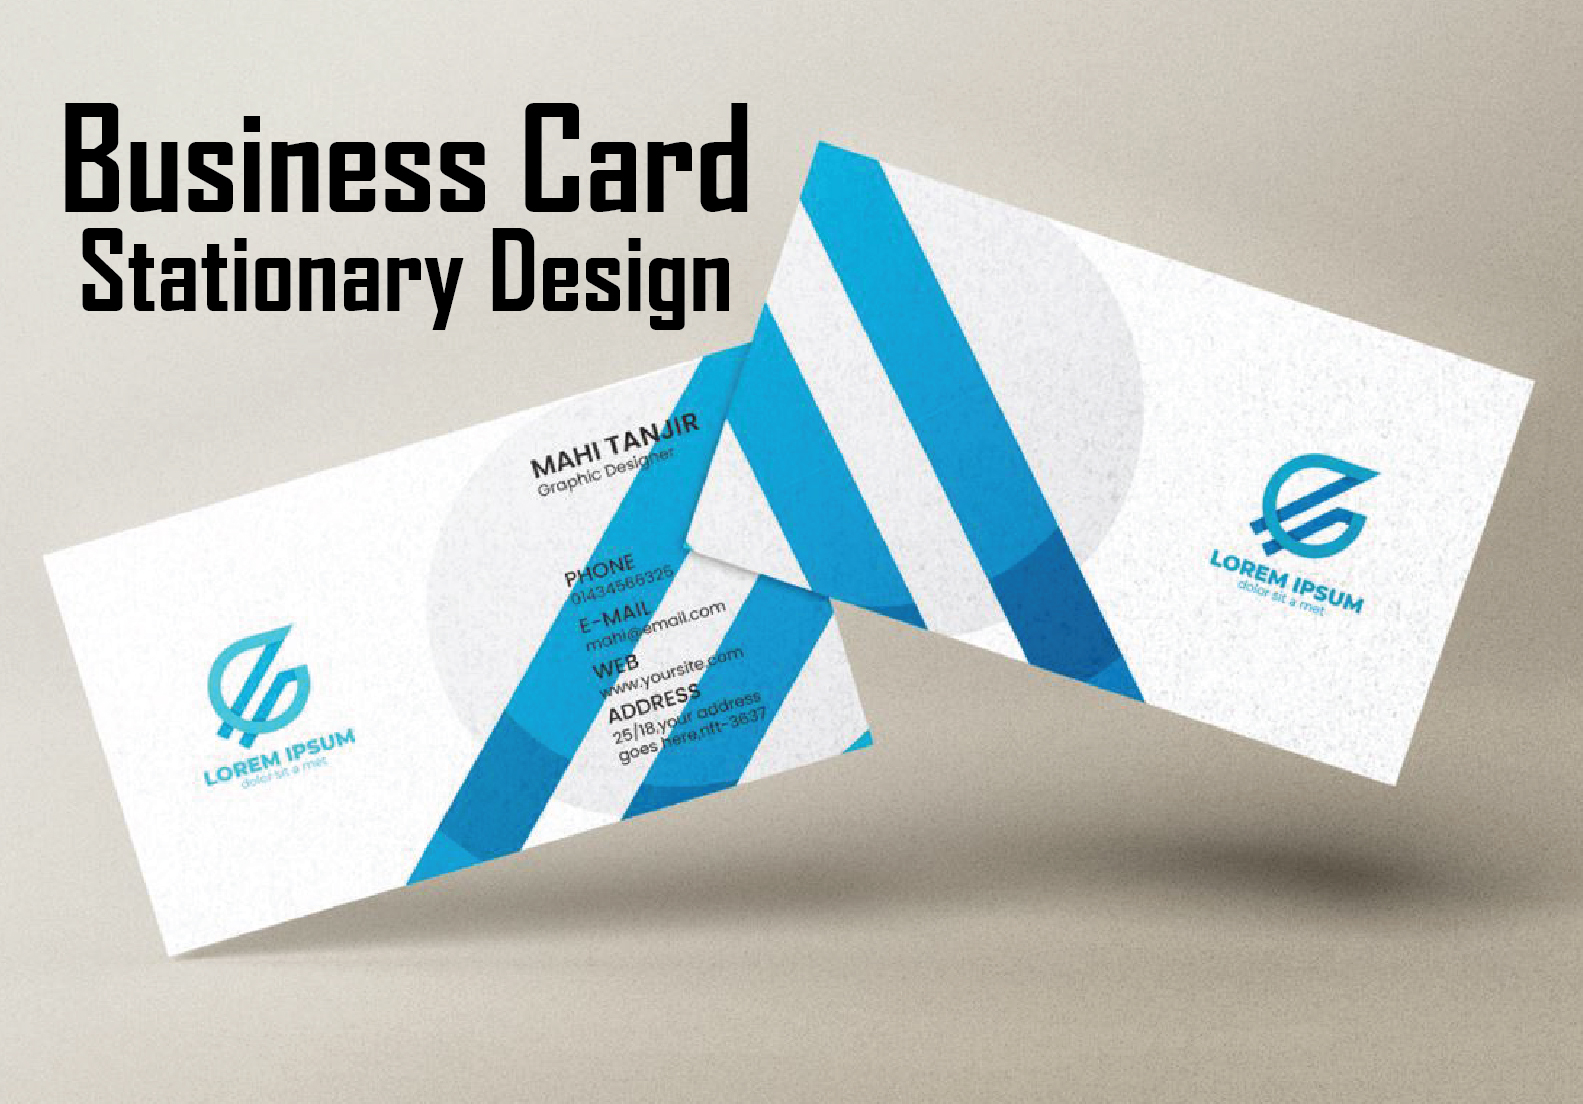 I can create eyecatchy business cards and stationery design